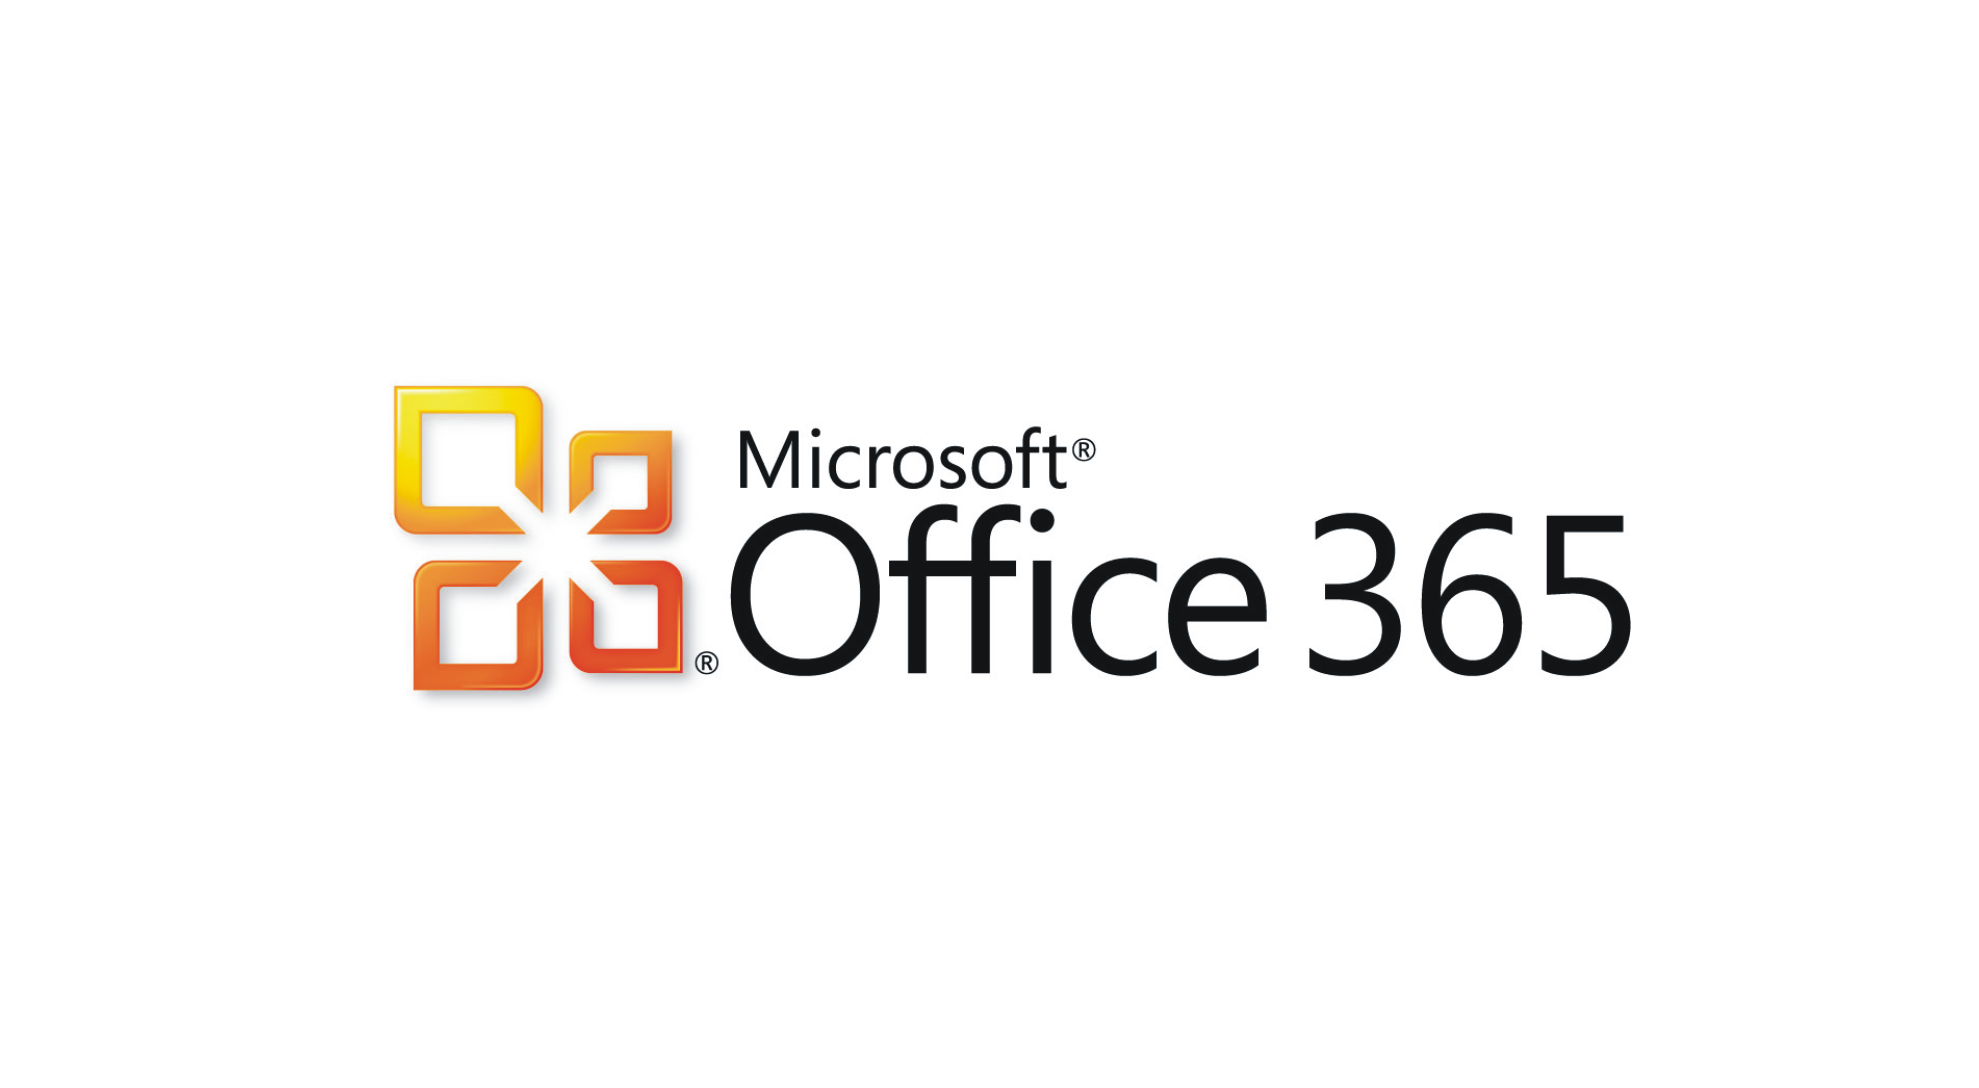 Microsoft Office 2010 Professional Plus Vl X64 Скачать